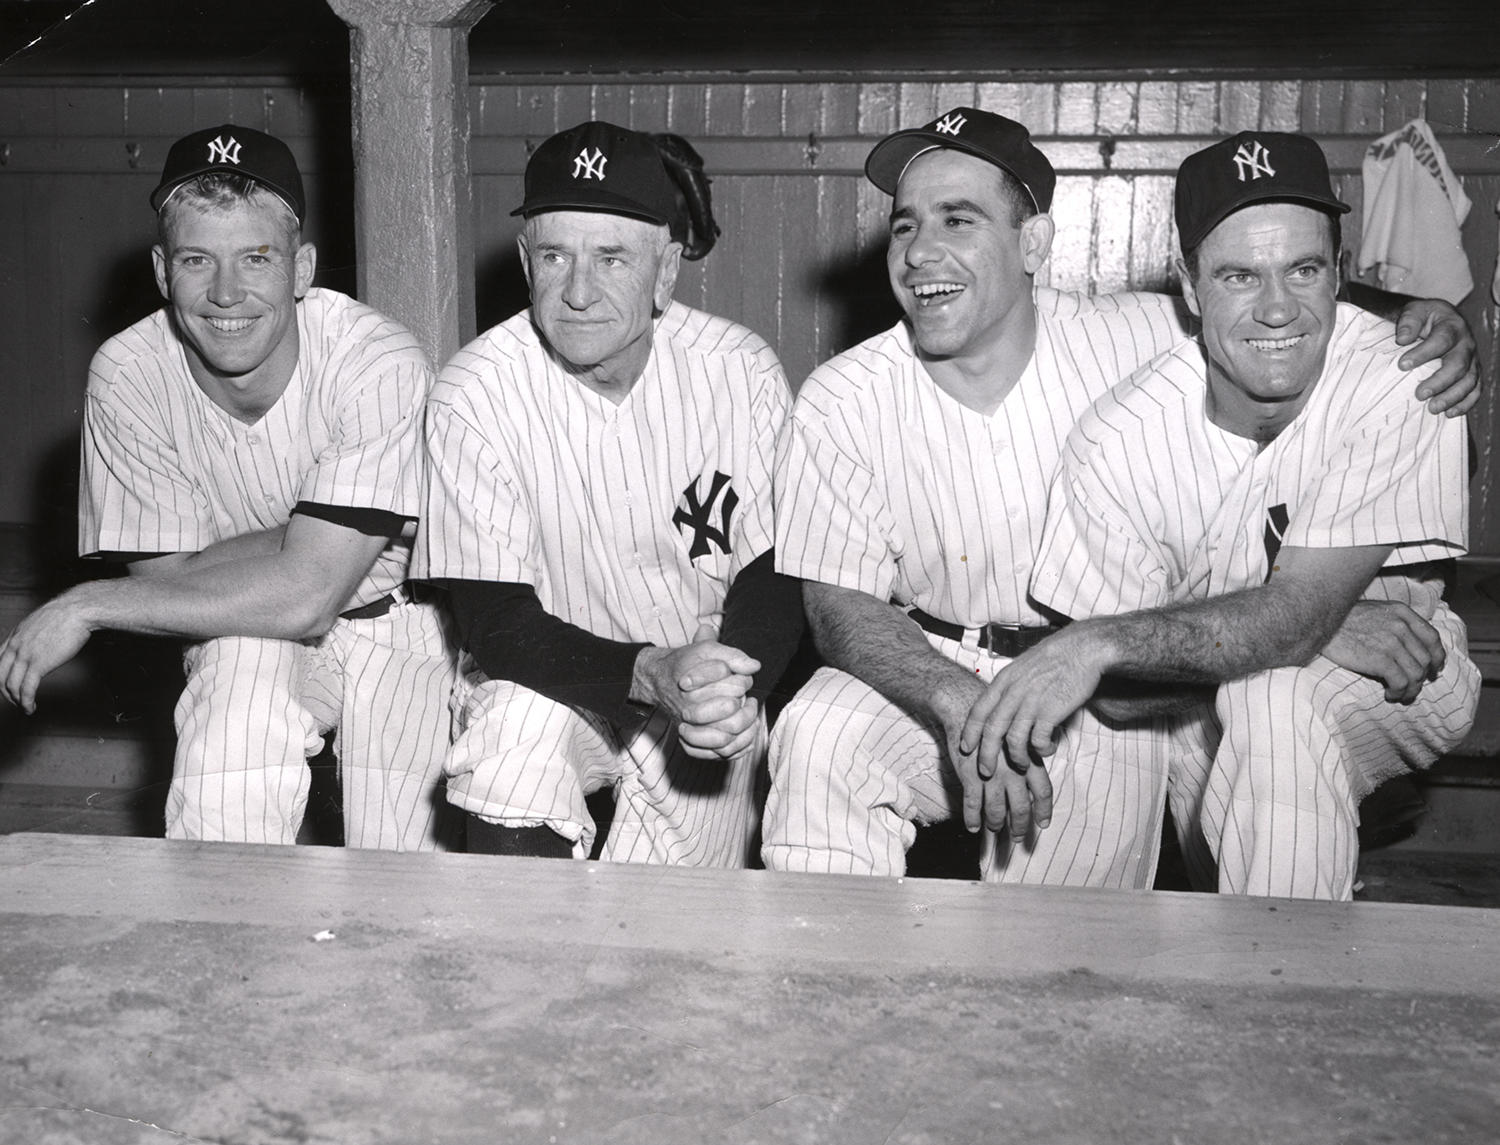 Casey Stengel was at the helm of the New York Yankees from 1949-1960, leading them to 10 pennants and seven World Series titles. From left, Mickey Mantle, Stengel, Yogi Berra and Hank Bauer pose in the dugout.(National Baseball Hall of Fame and Museum)